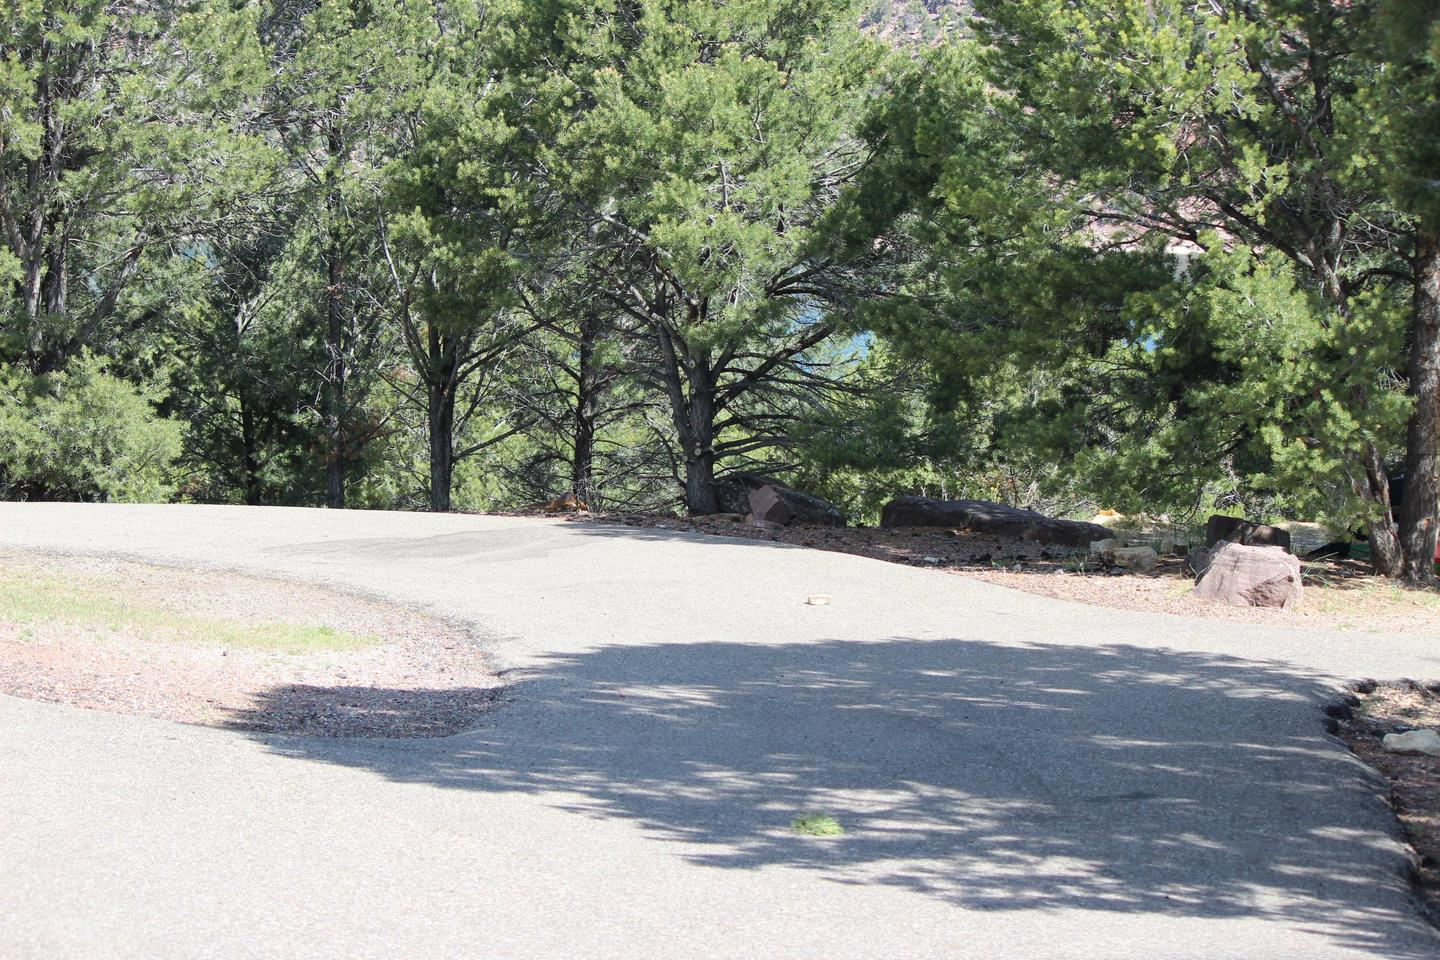 The road and trees that are in the vicinity of the campsite.Cedar Springs Campground: Site 8